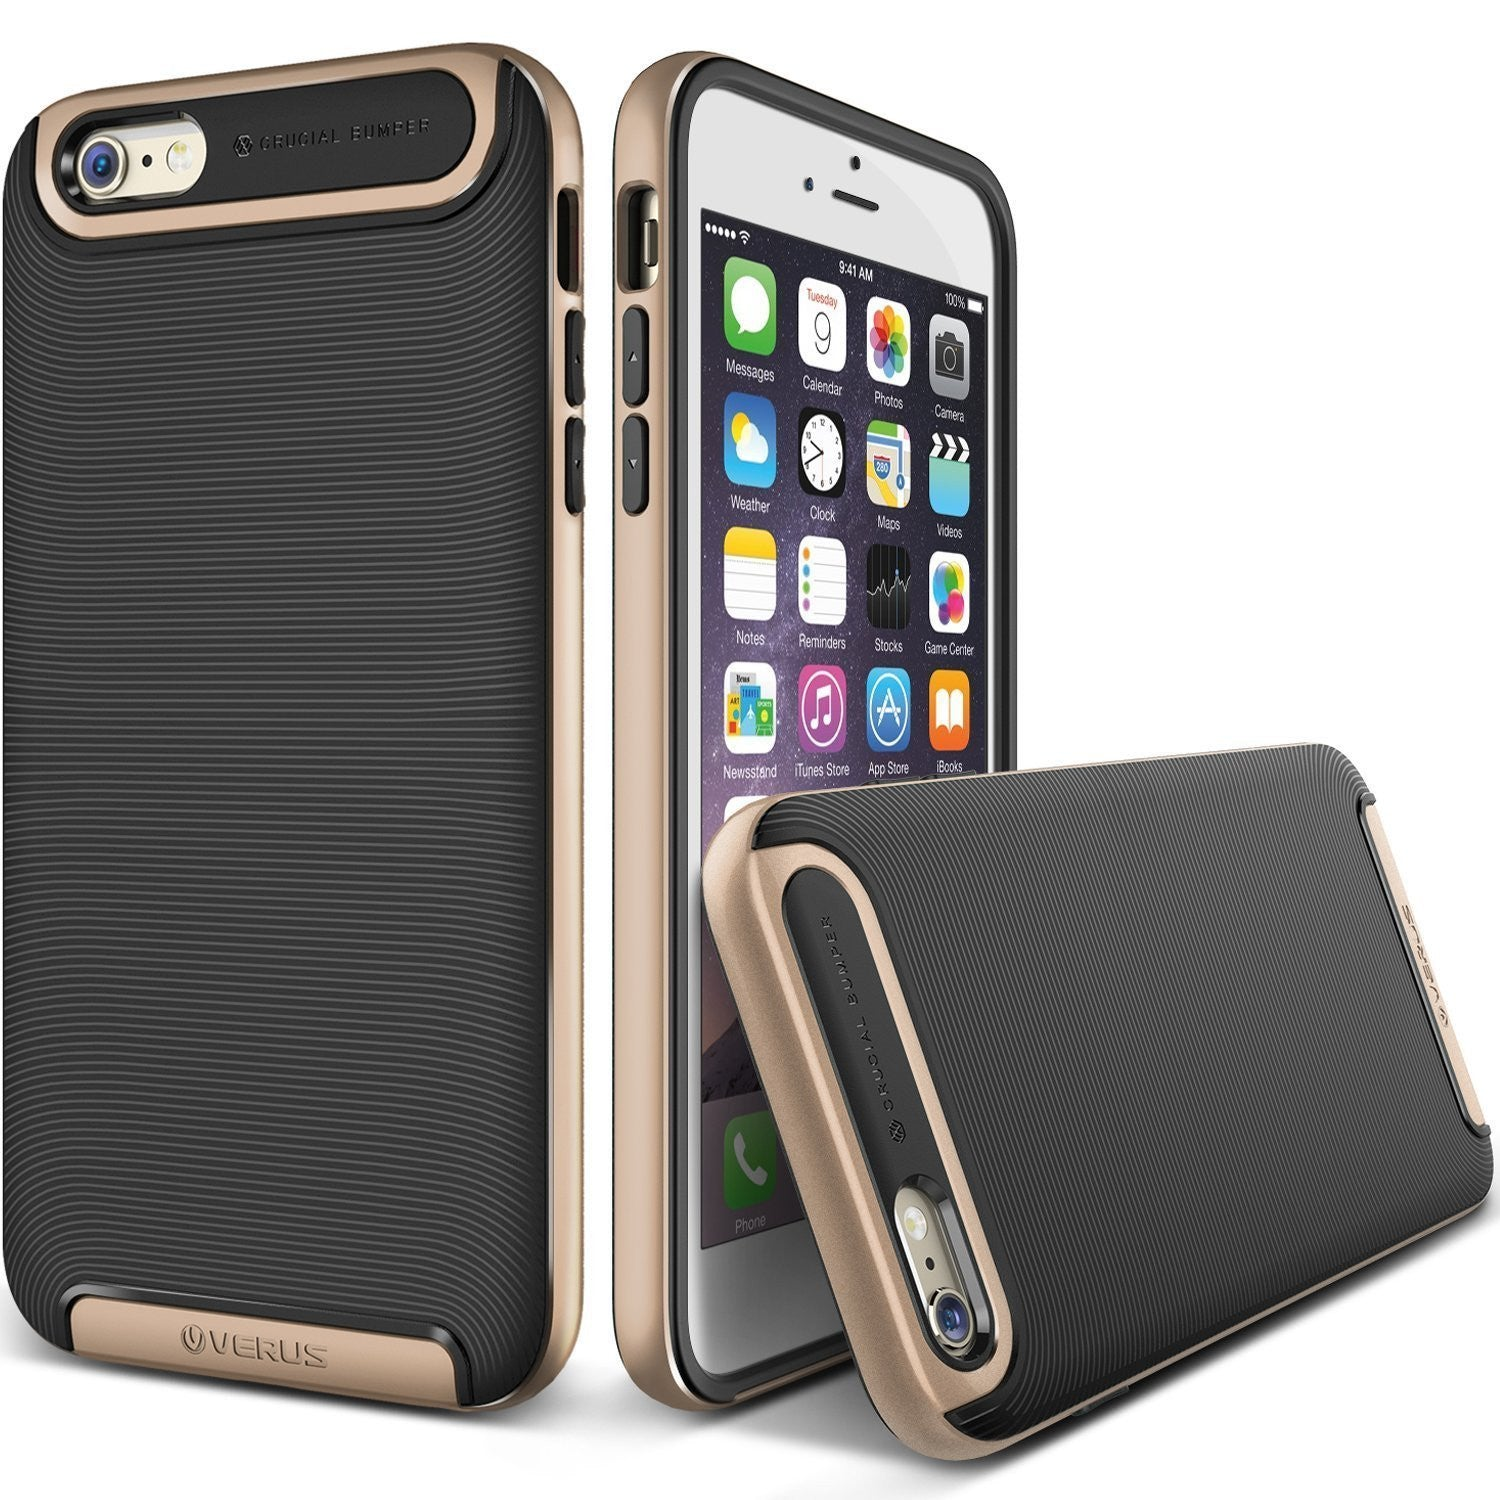 Kapa Ultra Slim Dual Layer Shockproof Back Case Cover for iPhone 6 - Gold - Mobizang